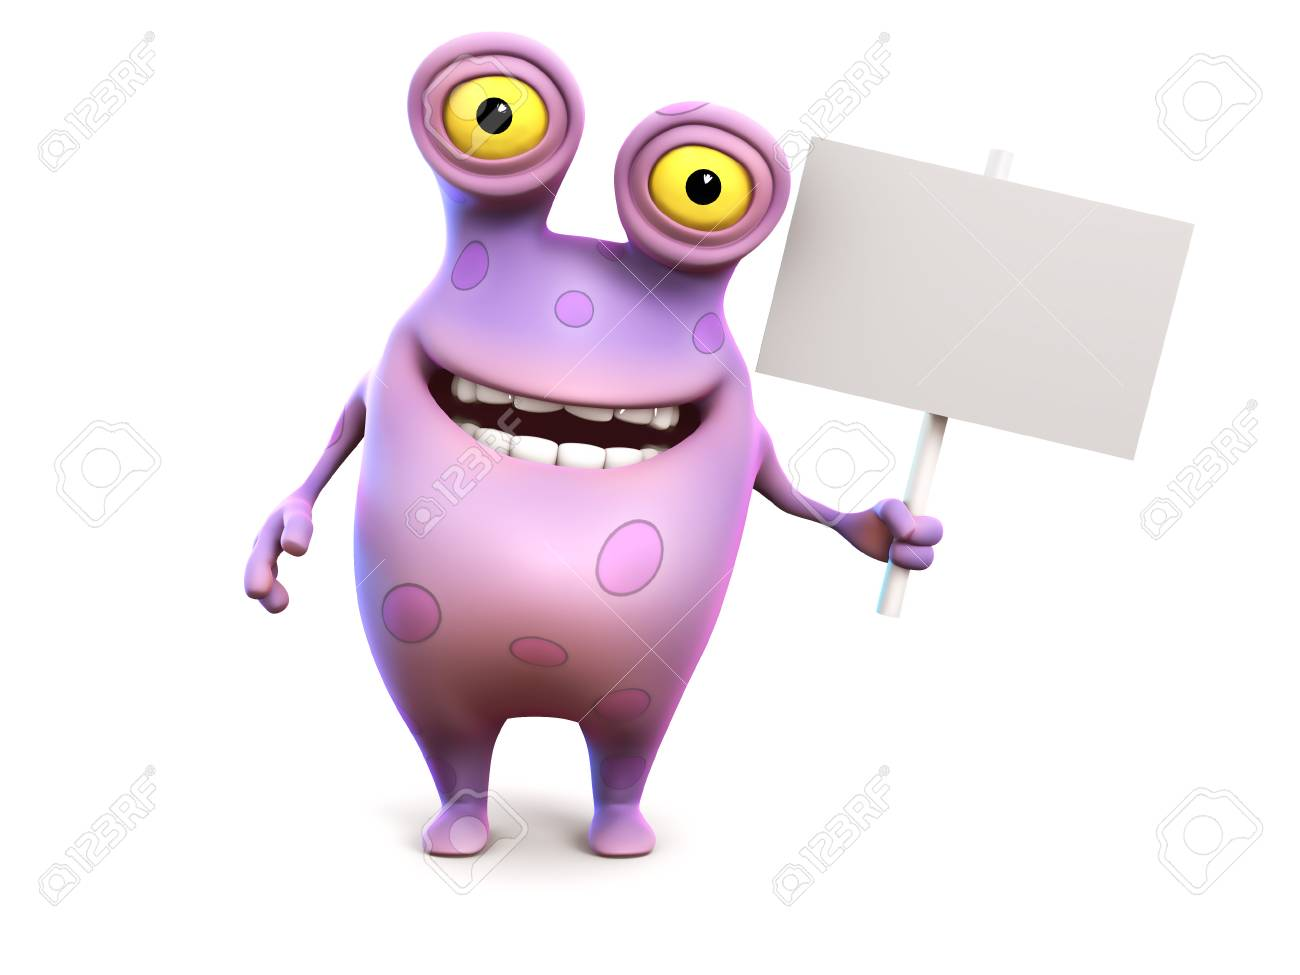 A smiling cute charming pink spotted cartoon monster holding a blank sign in his hand. White background. Stock Photo - 23933172